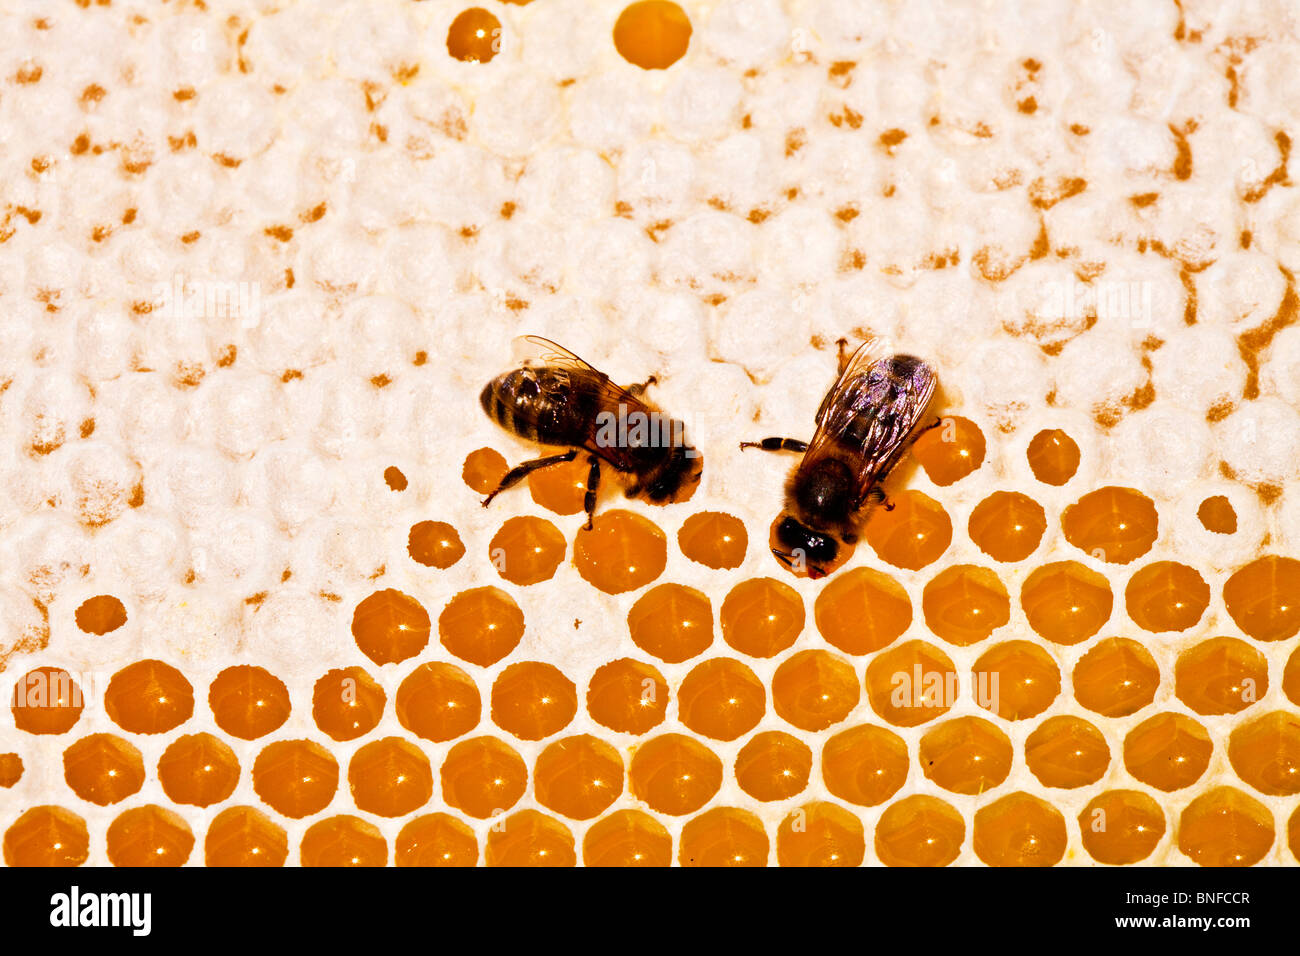 Two bees on a honeycomb showing capped and uncapped hexagonal cells - Stock Image